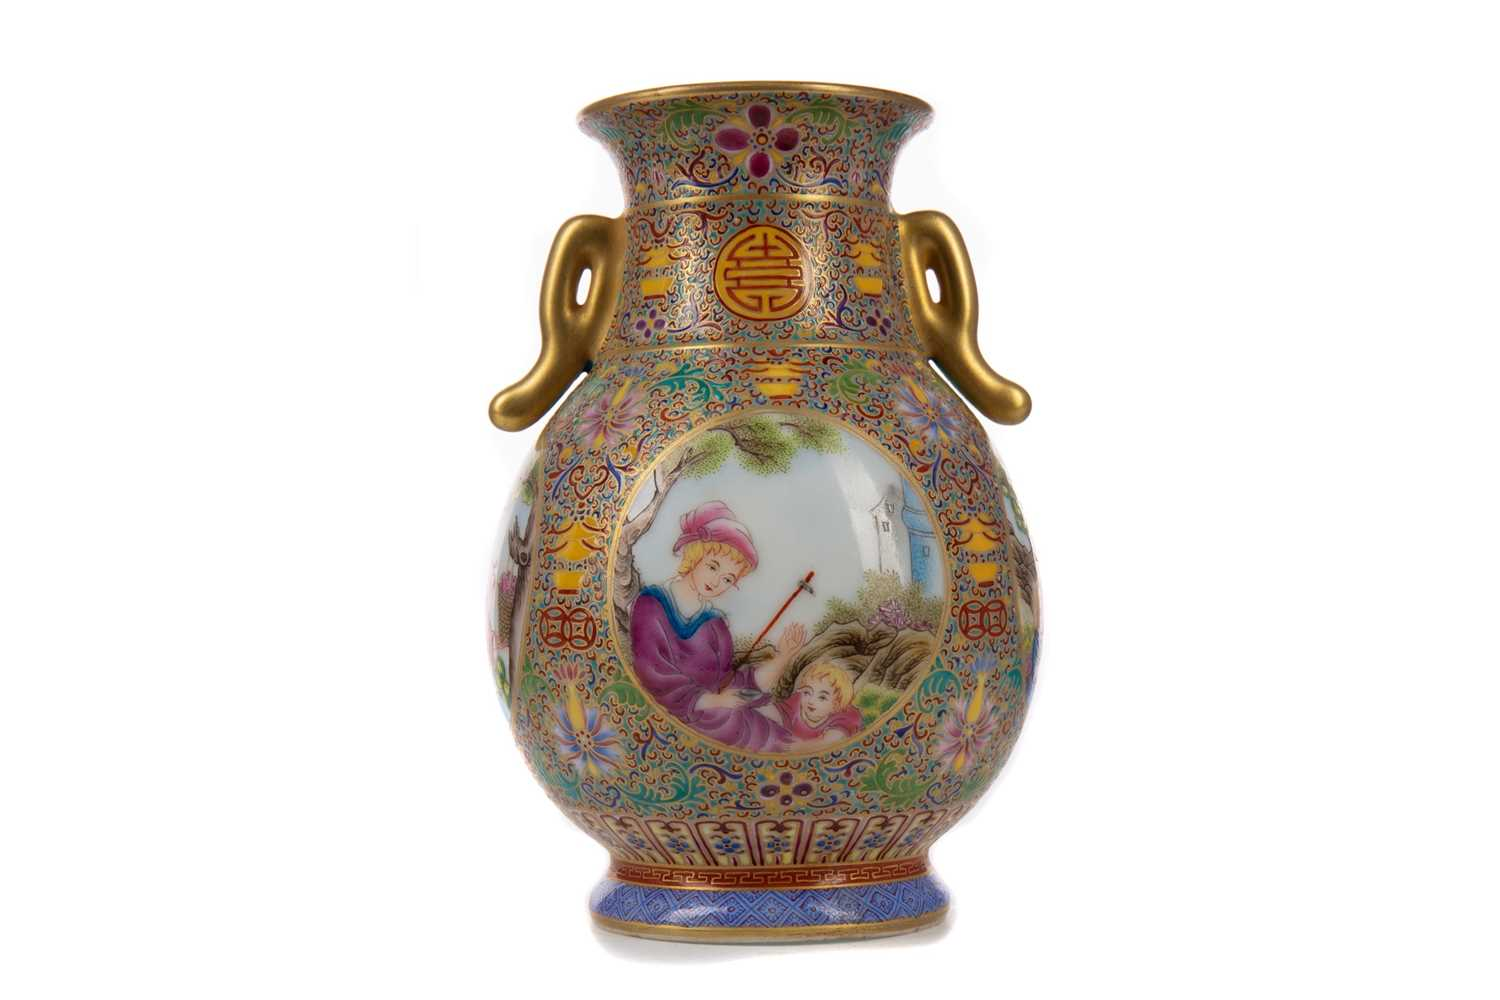 Lot 1687 - A CHINESE FAMILLE ROSE VASE